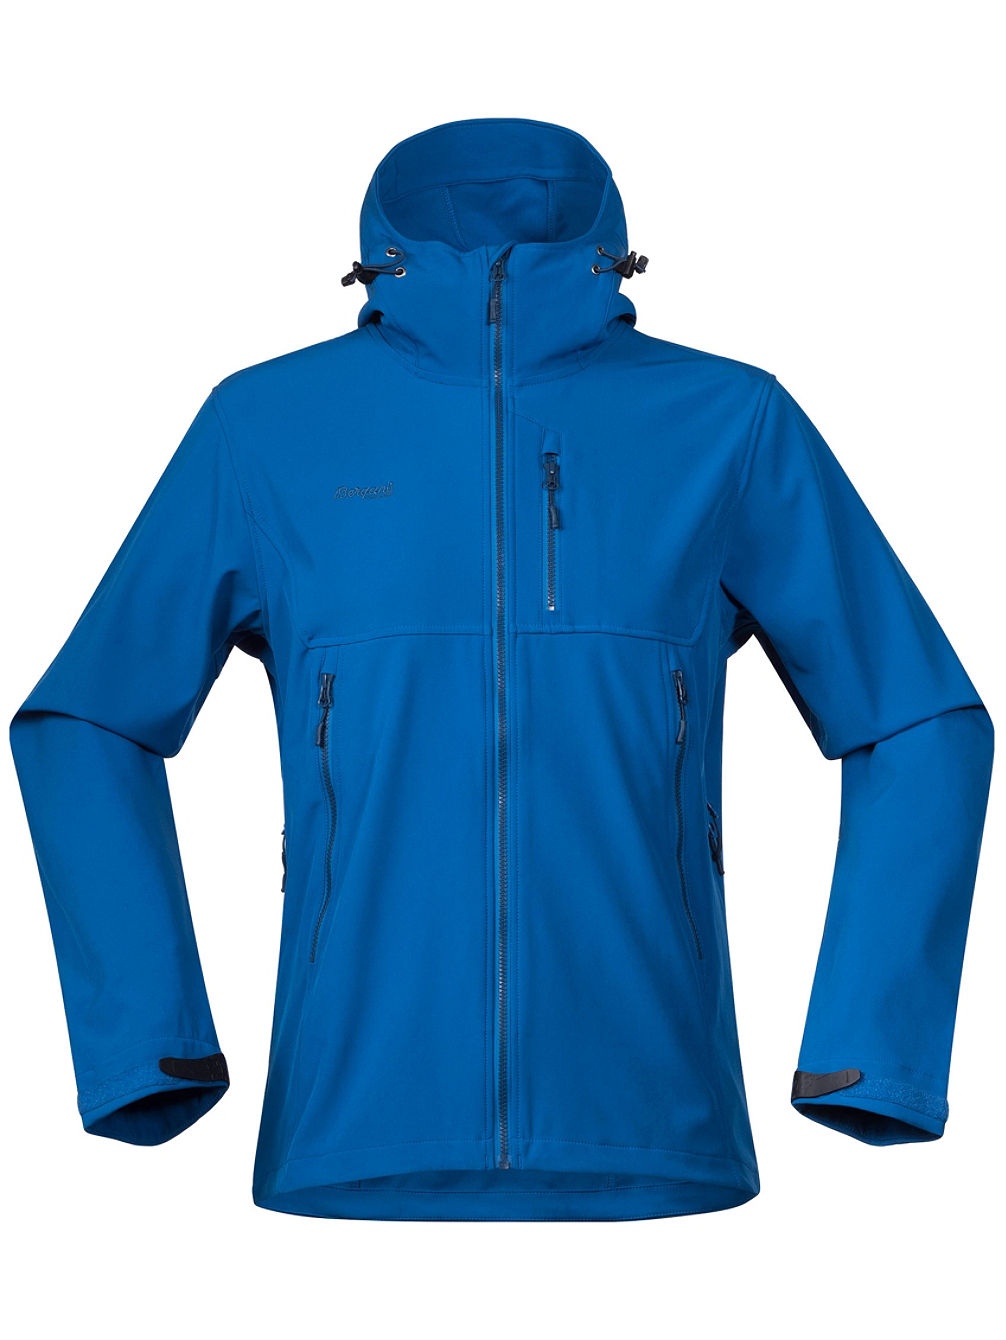 Stegaros Outdoorjacke